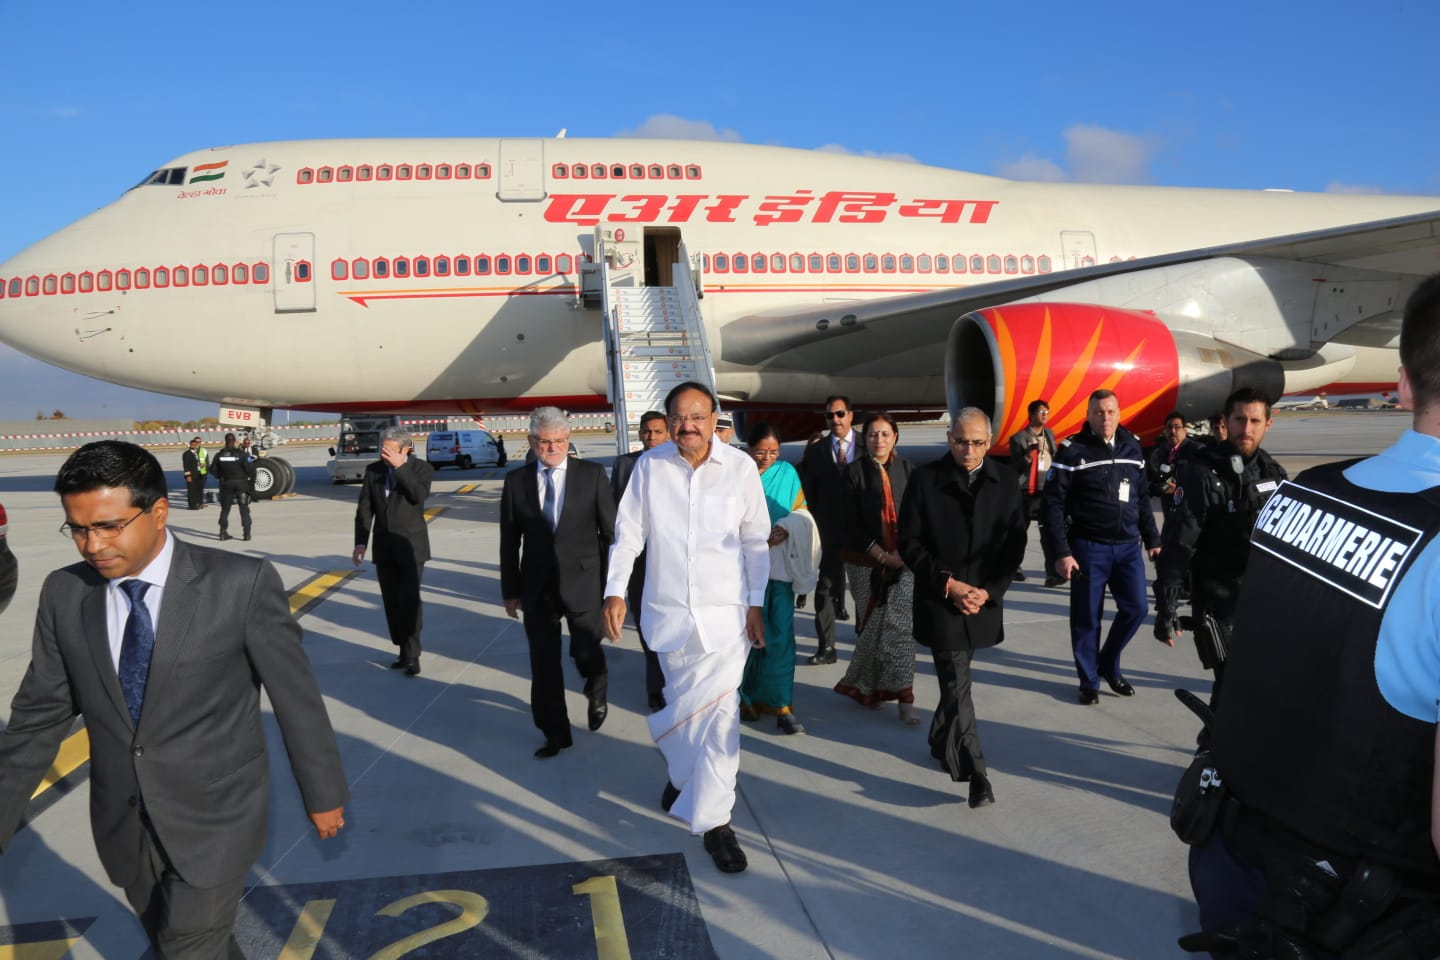 Hon'ble Vice President of India Shri M. Venkaiah Naidu arrives in Paris on a 3-day visit at the invitation of French Government